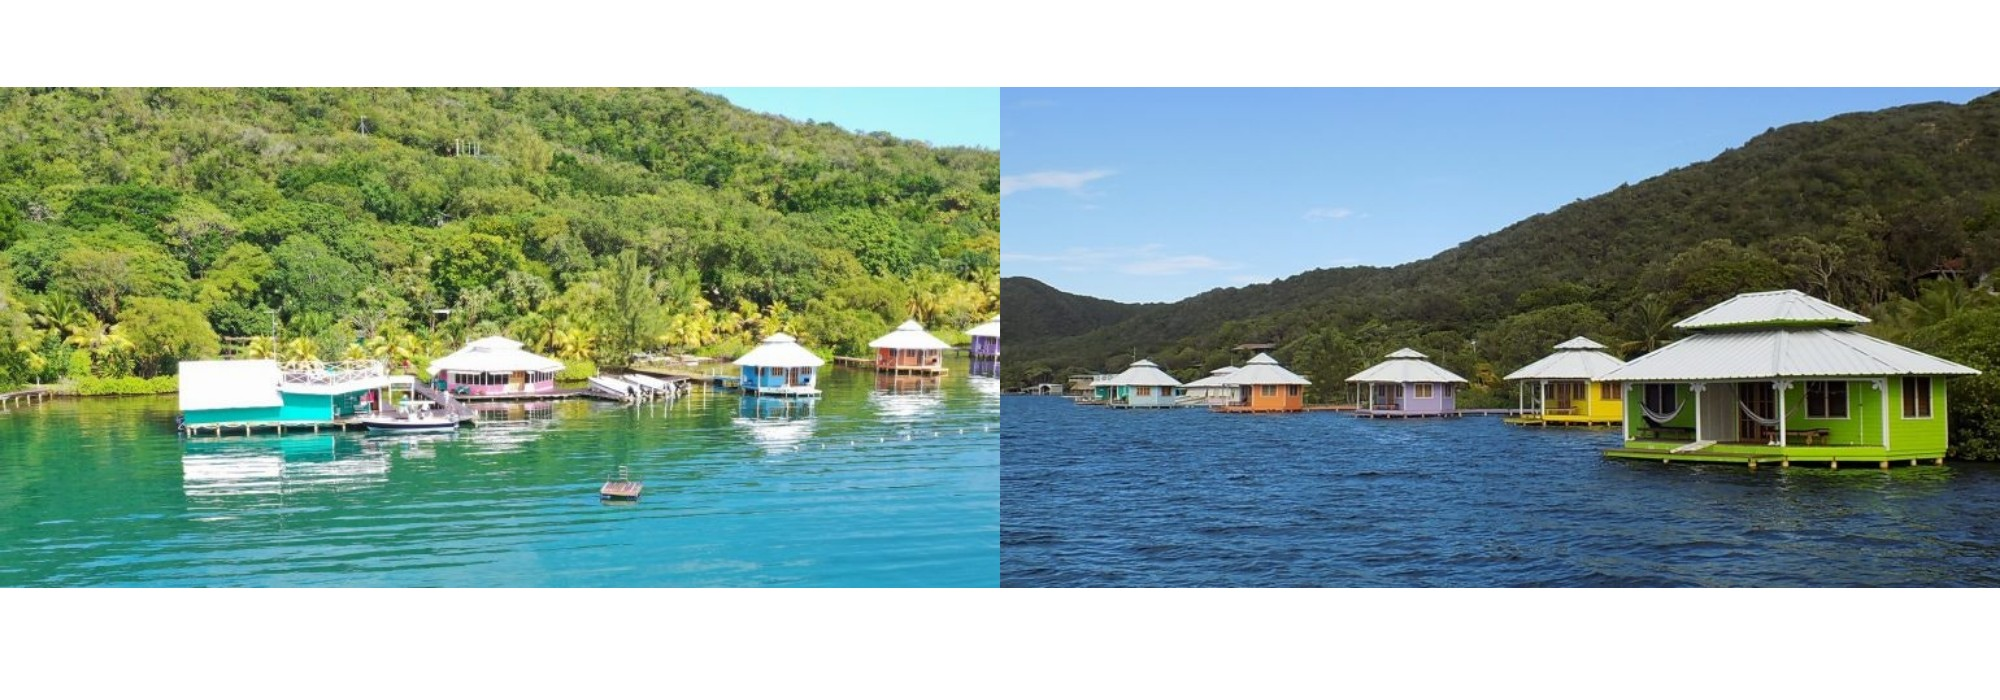 Private 21 Acre Lodge for Sale in Roatan Honduras